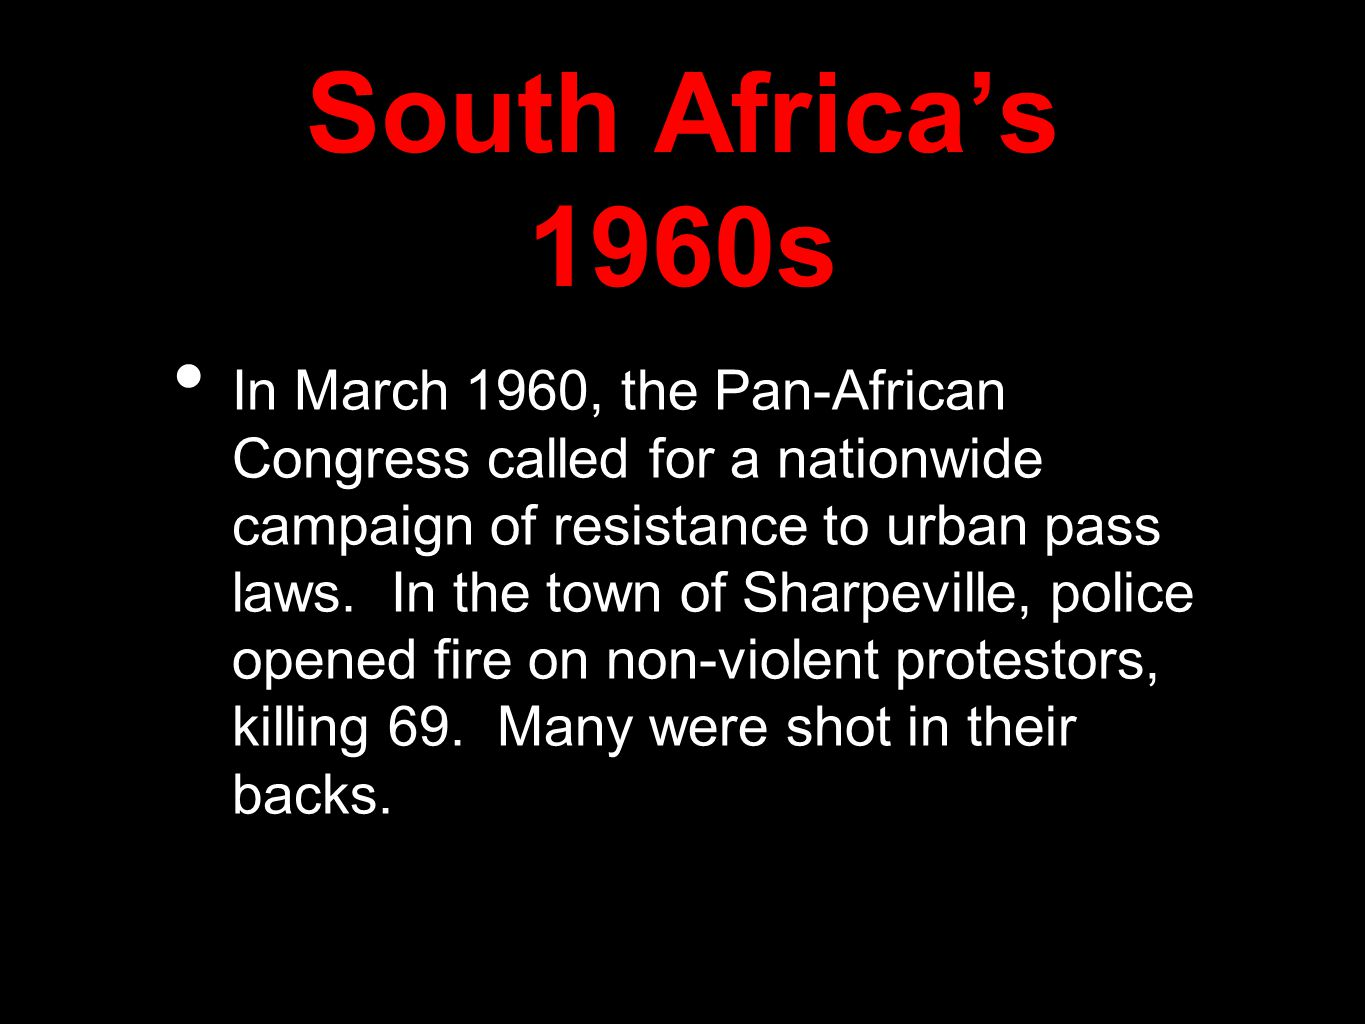 South Africa's 1960s In March 1960, the Pan-African Congress called for a nationwide campaign of resistance to urban pass laws.